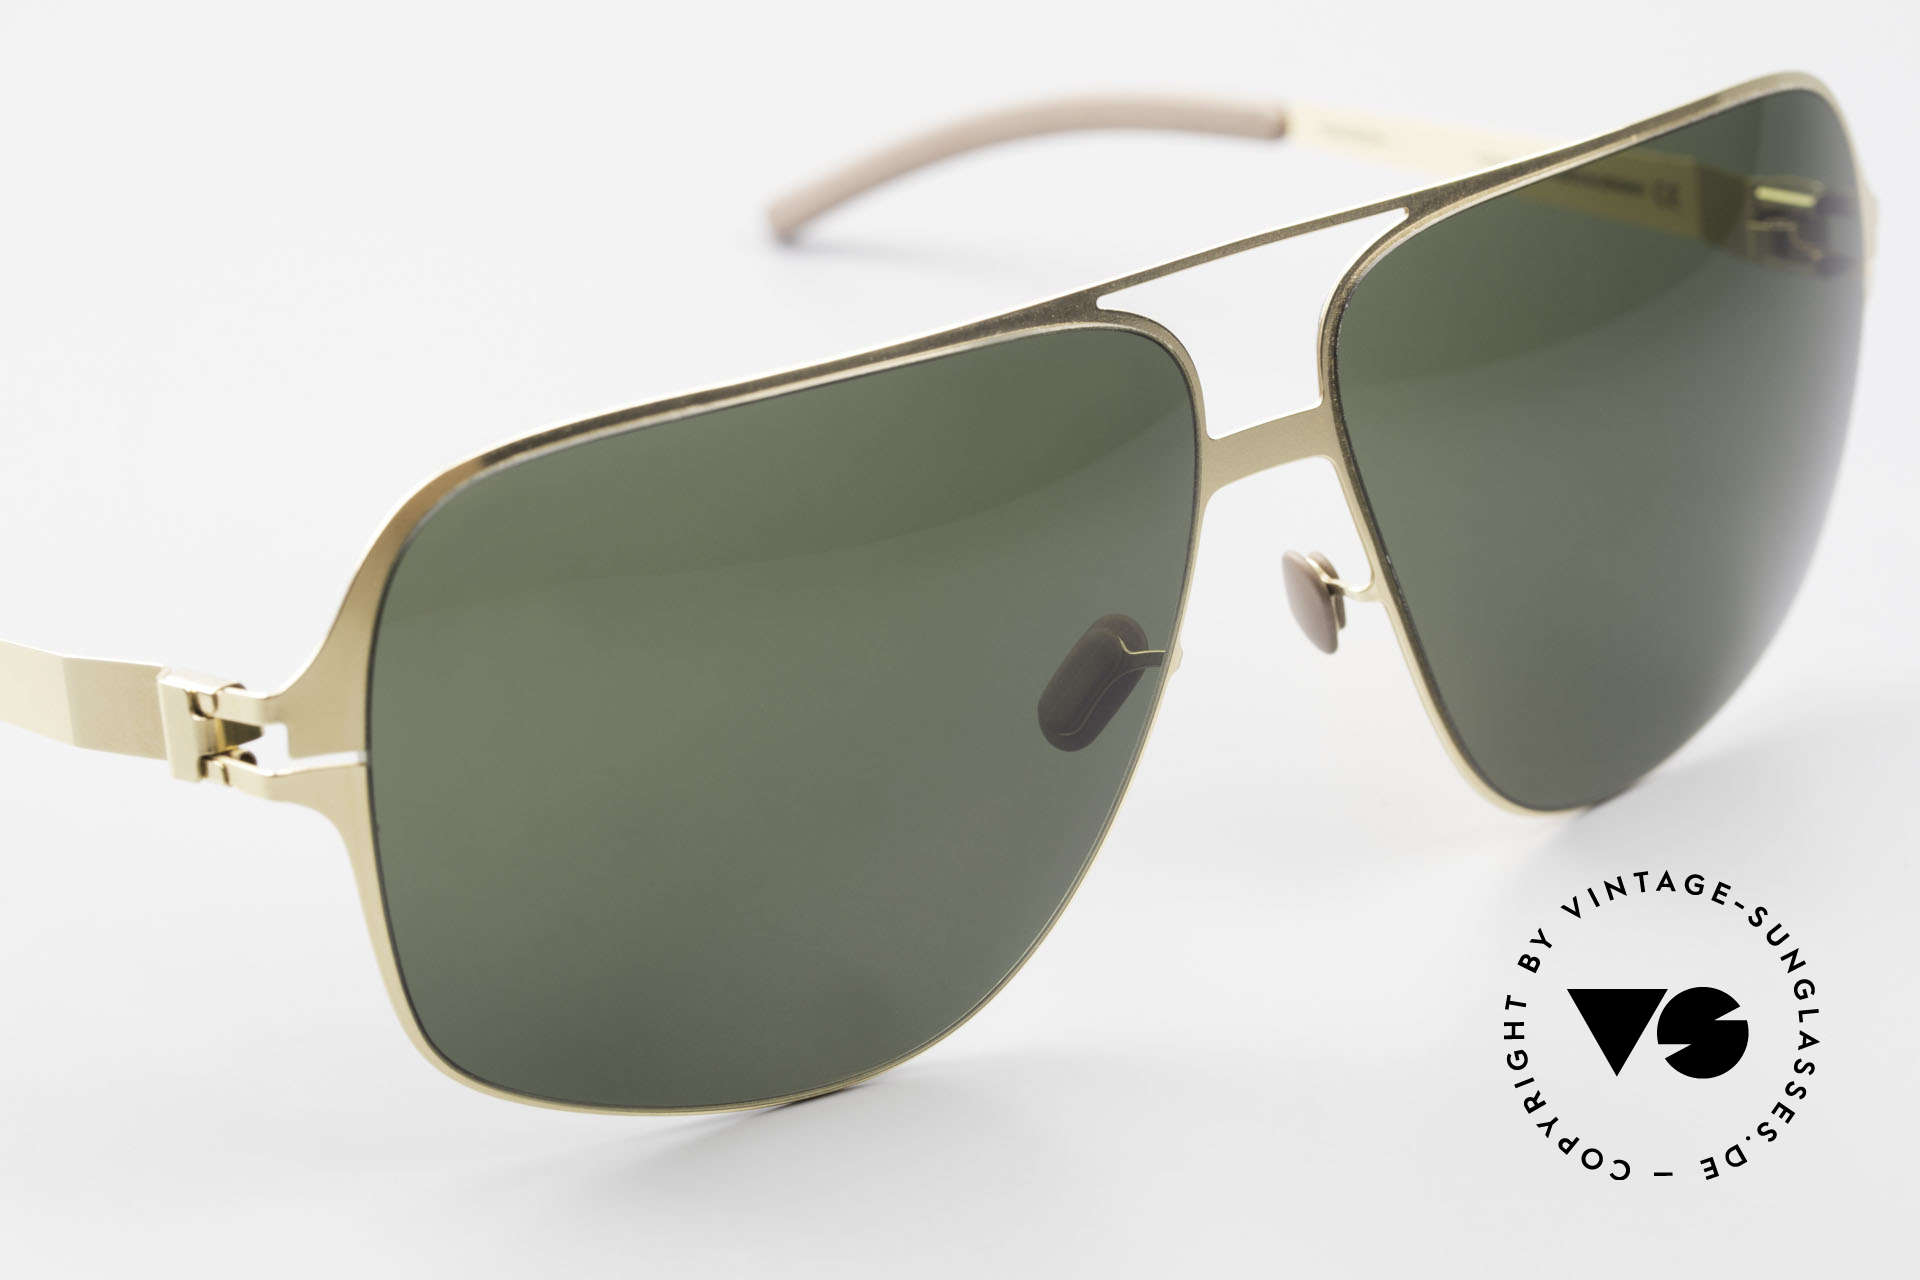 Mykita Cassius Lenny Kravitz XXL Sunglasses, top-notch quality, made in Germany (Berlin-Kreuzberg), Made for Men